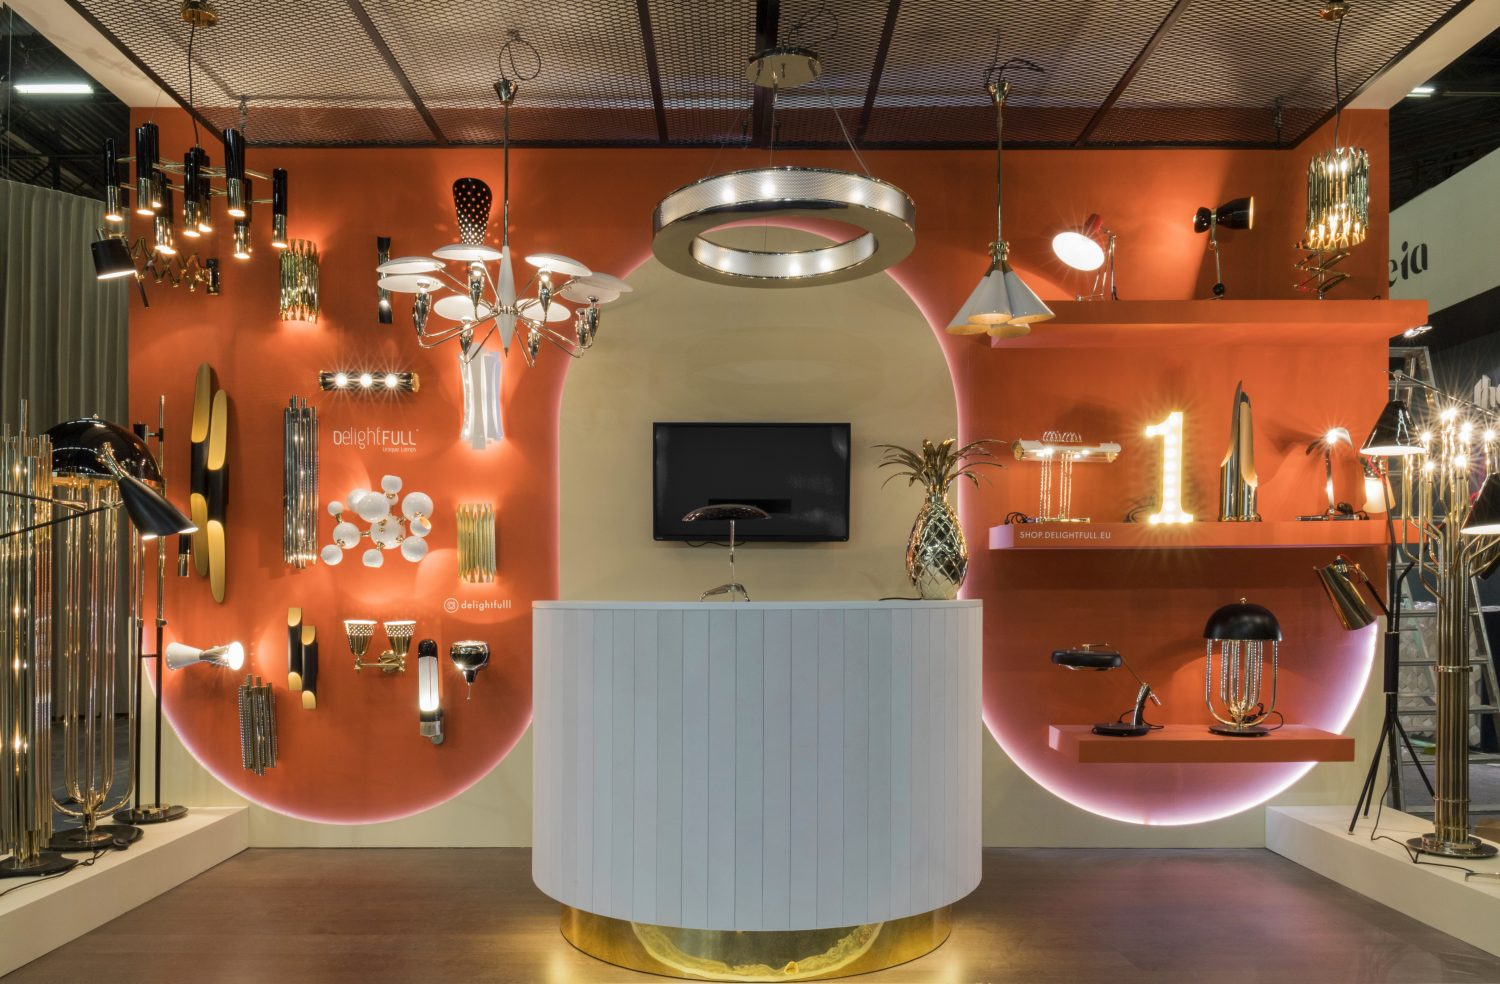 maison et objet 2020 The Biggest Highlights From Maison Et Objet 2020 [Video] biggest highlights maison objet 2020 7